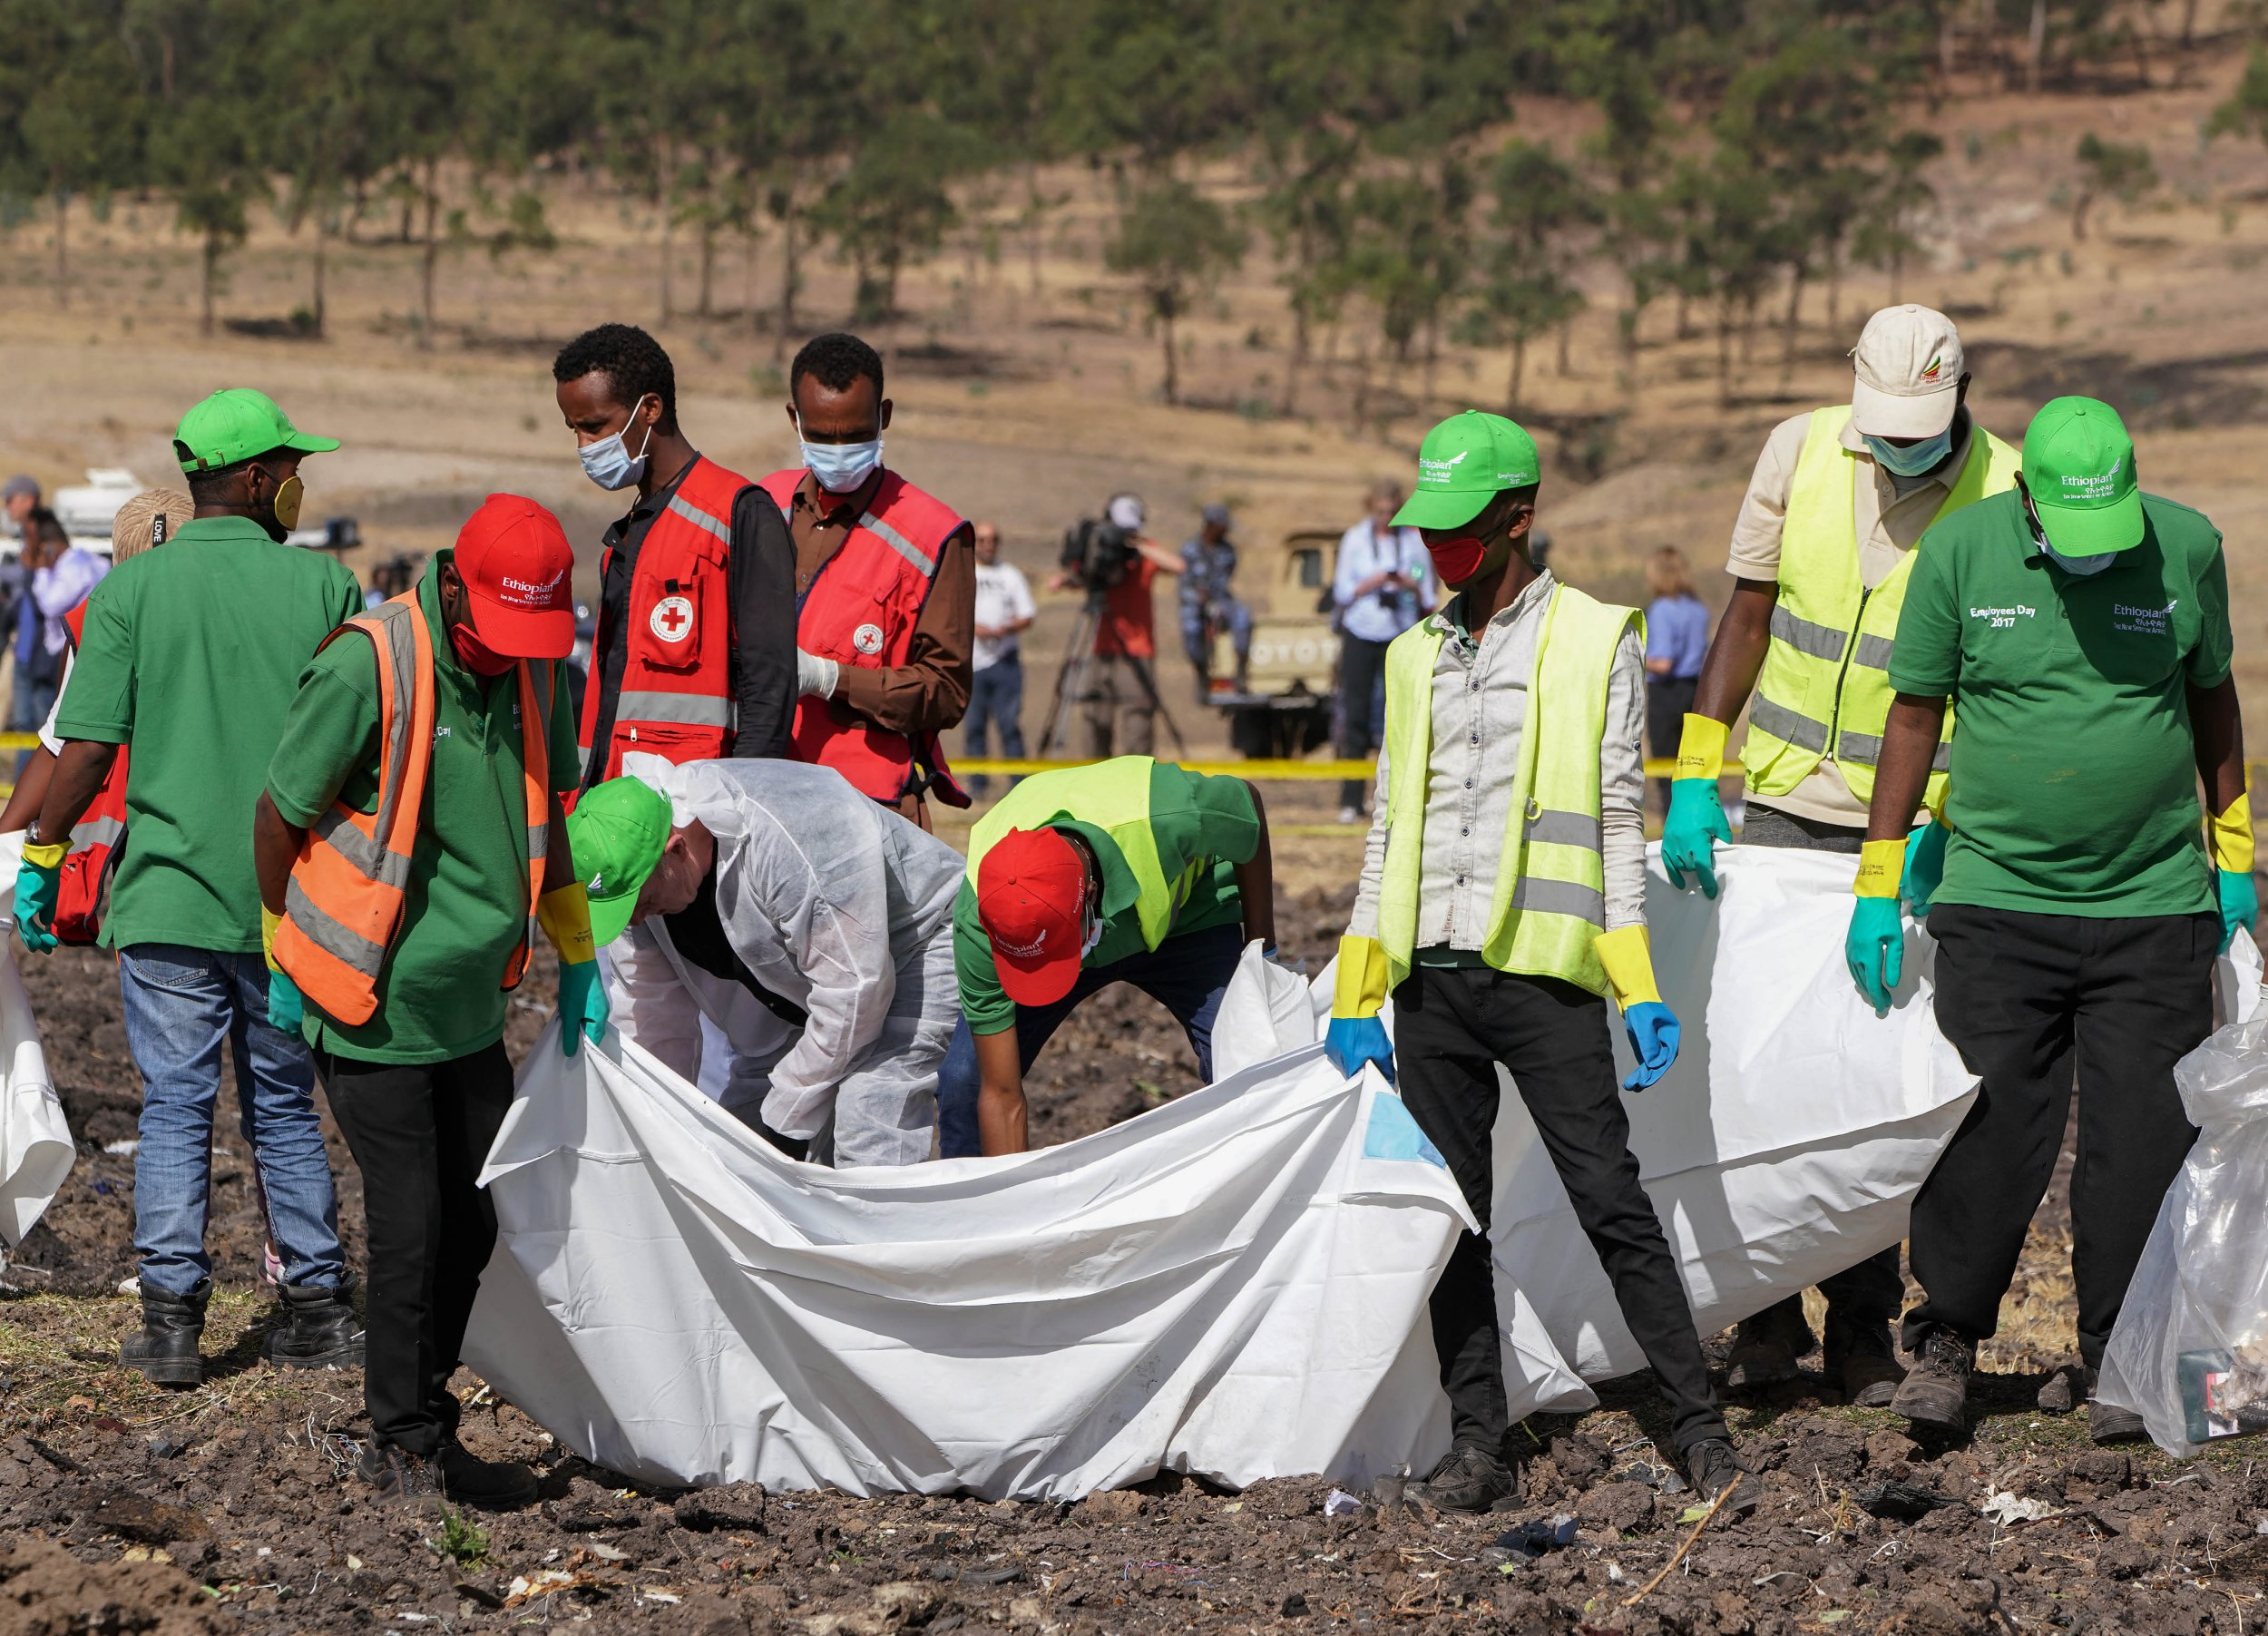 BISHOFTU, ETHIOPIA - MARCH 12: Forensics investigators and recovery teams collect personal effects and other materials from the crash site of Ethiopian Airlines Flight ET 302 on March 12, 2019 in Bishoftu, Ethiopia. All 157 passengers and crew perished after the Ethiopian Airlines Boeing 737 Max 8 Flight came down six minutes after taking off from Bole Airport. (Photo by Jemal Countess/Getty Images)